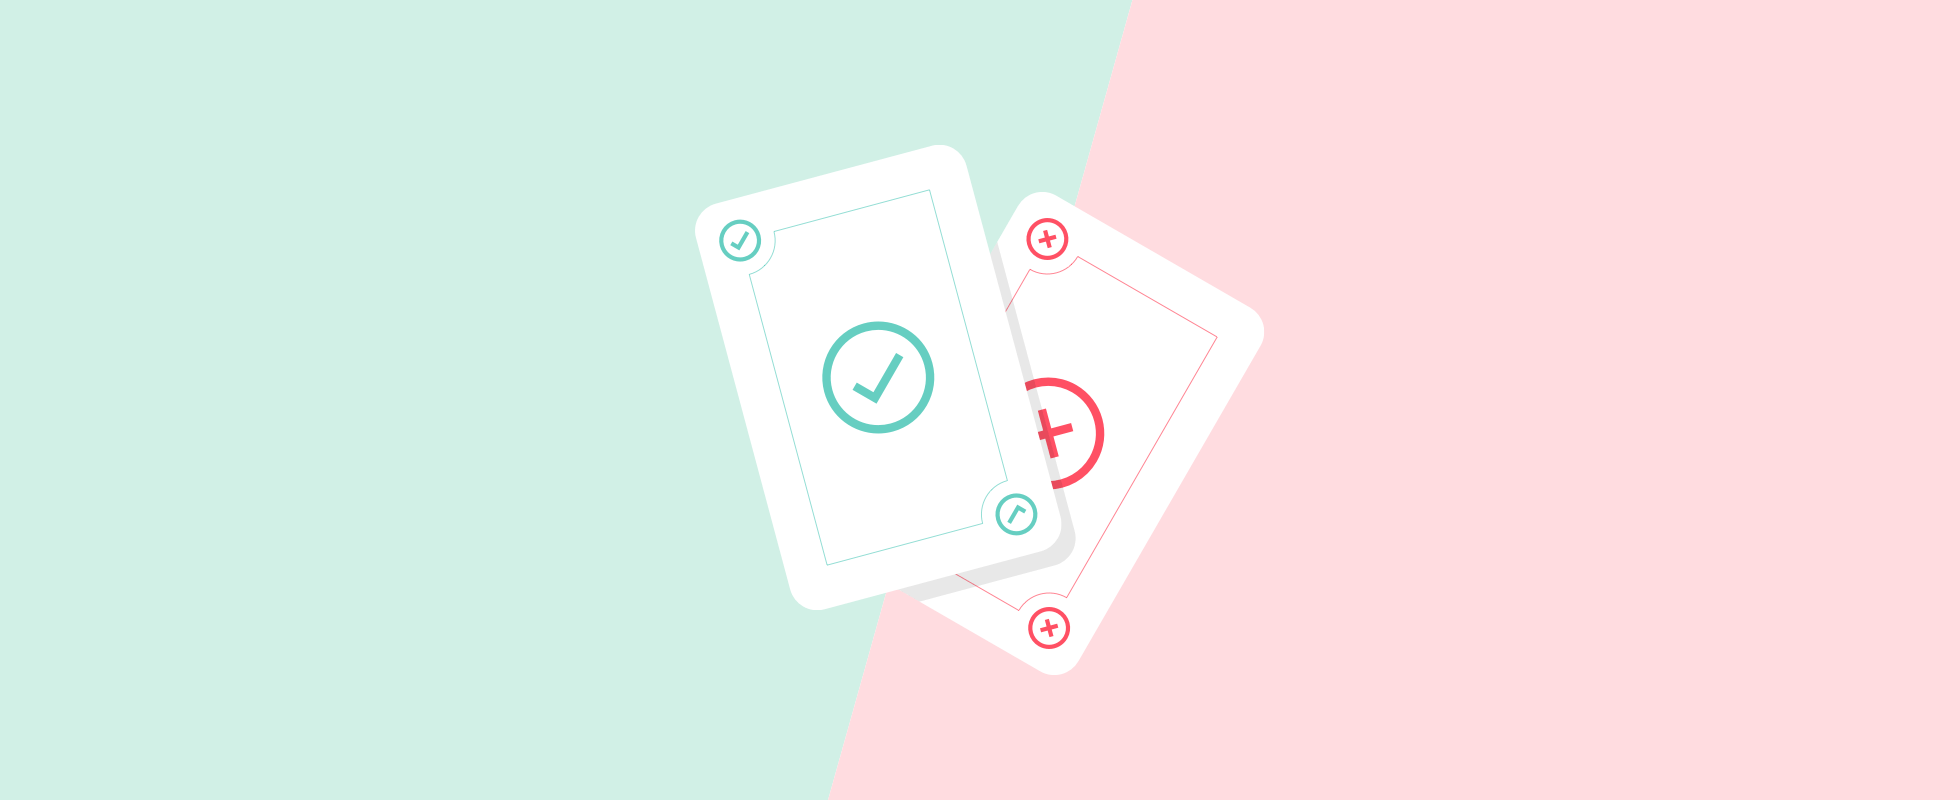 Do's and Don'ts for Using Animation in UI